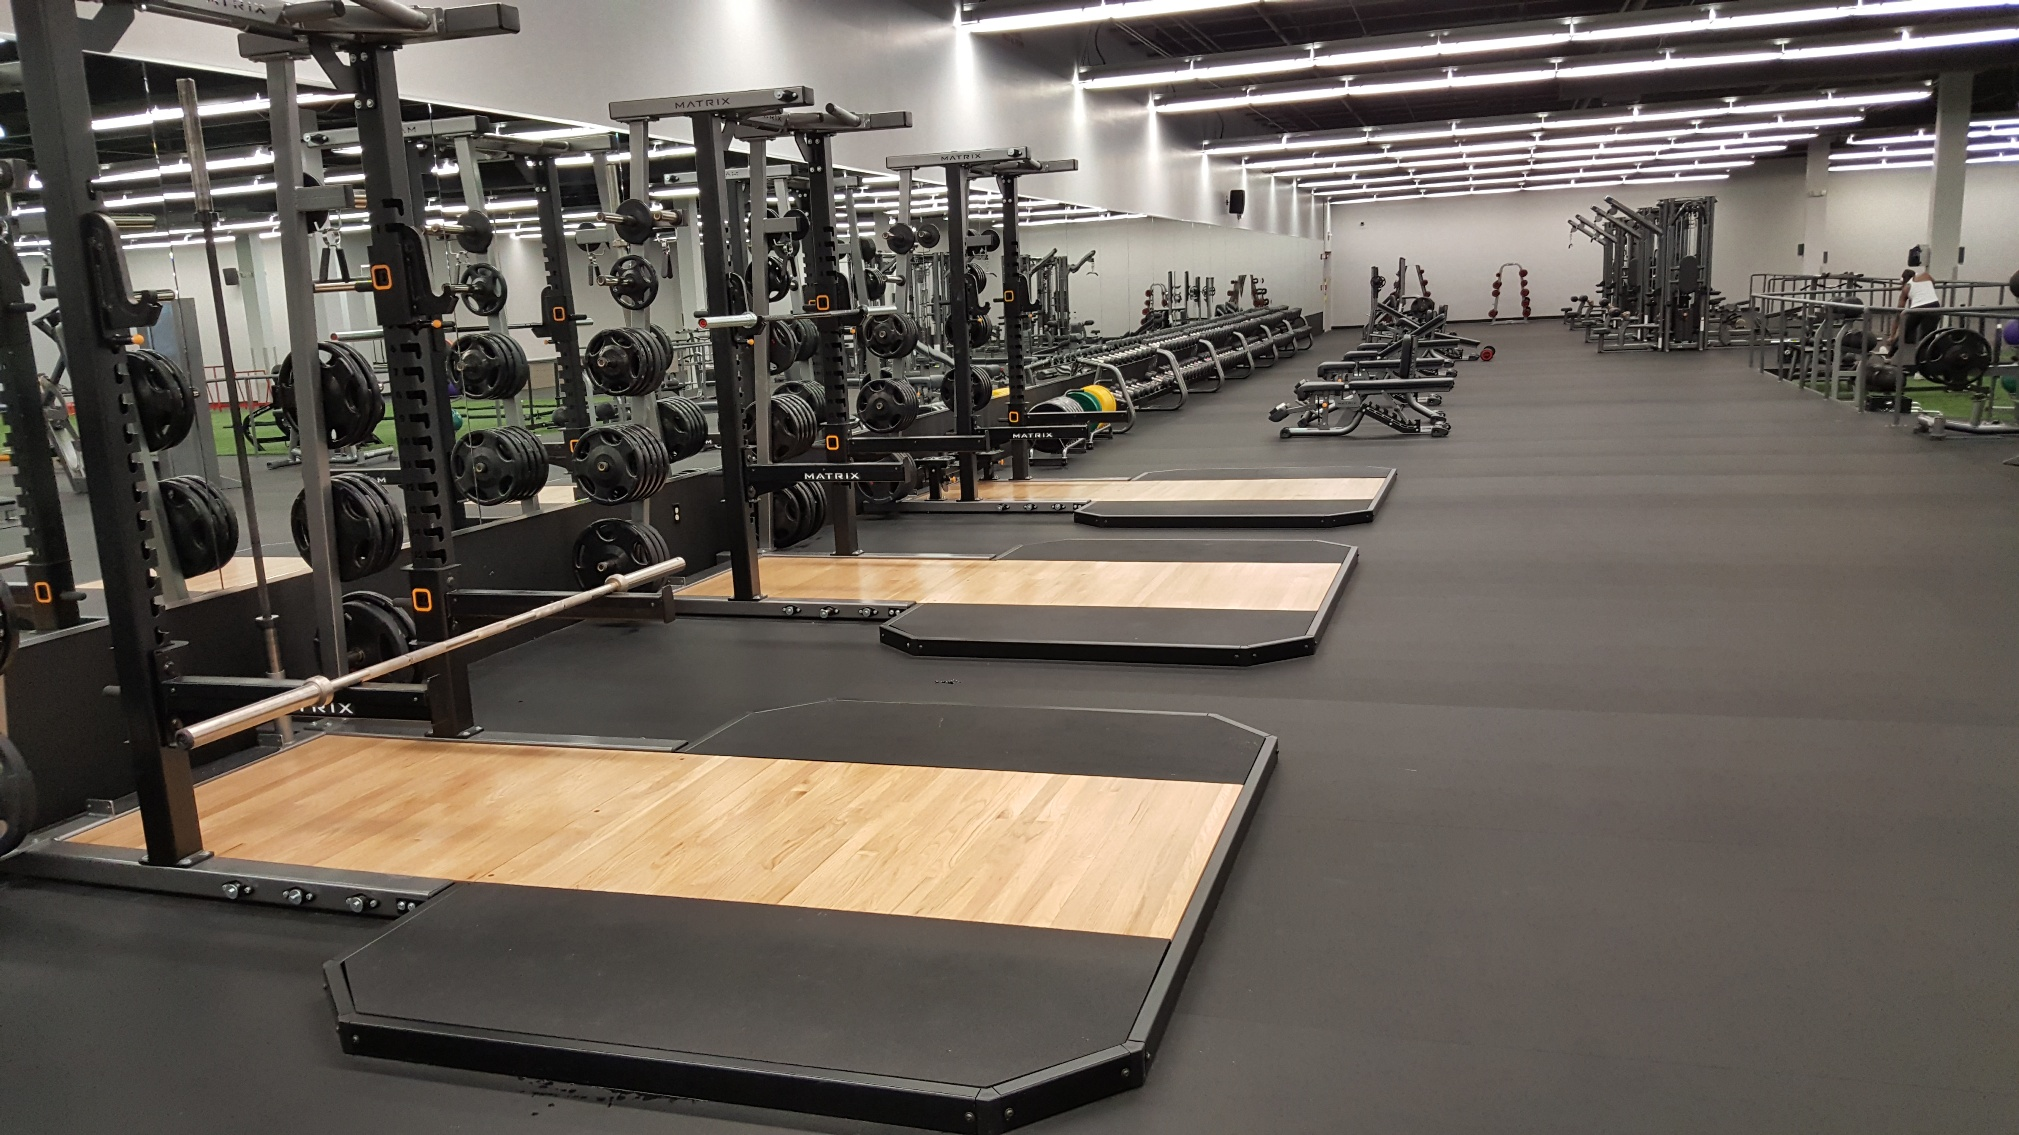 Fitness Centers In Tampa Fl | Powerhouse Gym Althetic Club